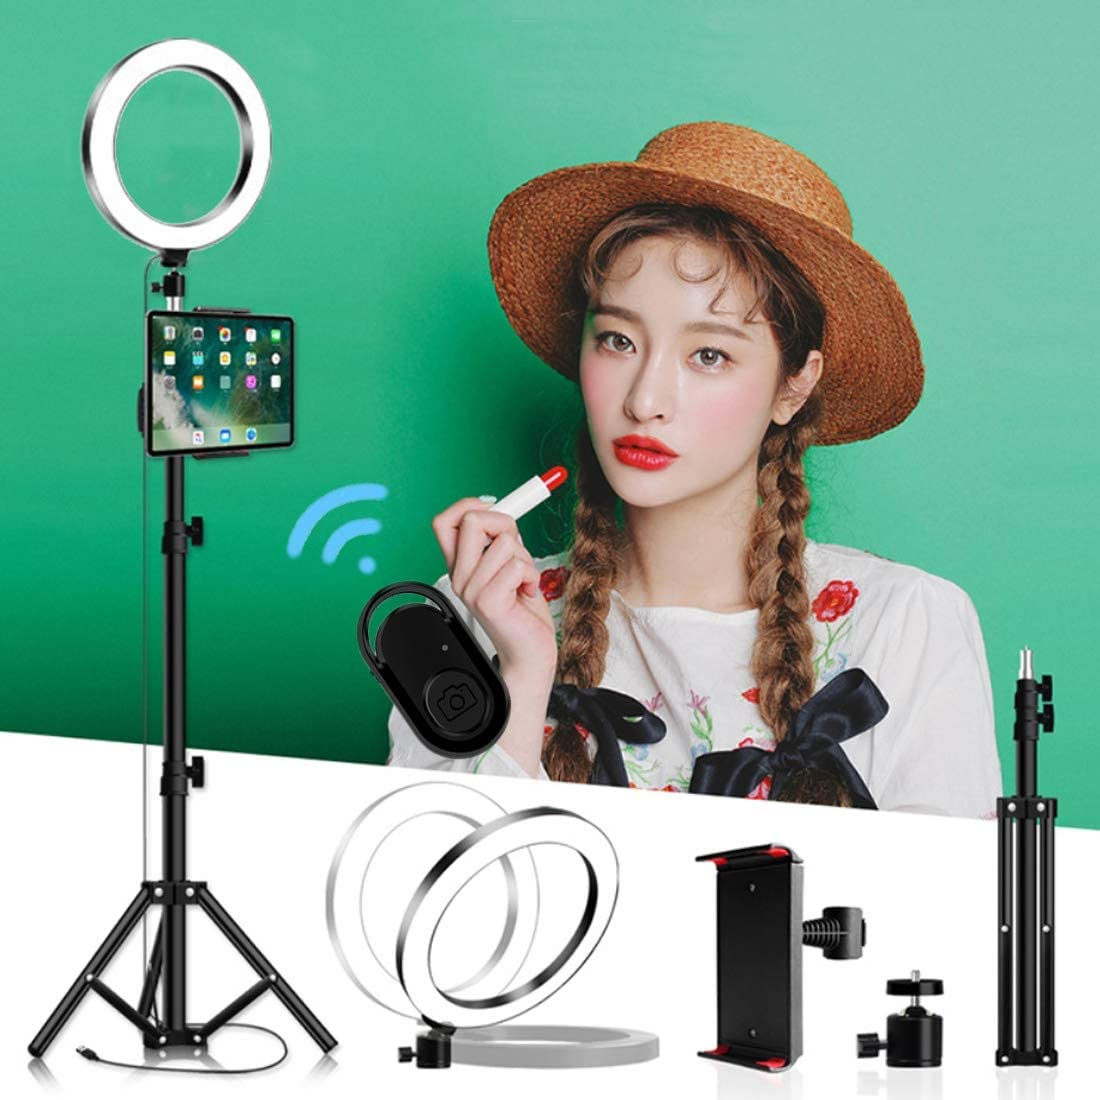 DLMPT LED Ring Light Lighting Kit with Tripod and Phone Holder 3 Color Temperature Ring Make Up Light Level Adjustable Brightness for Live Stream Makeup YouTube Video